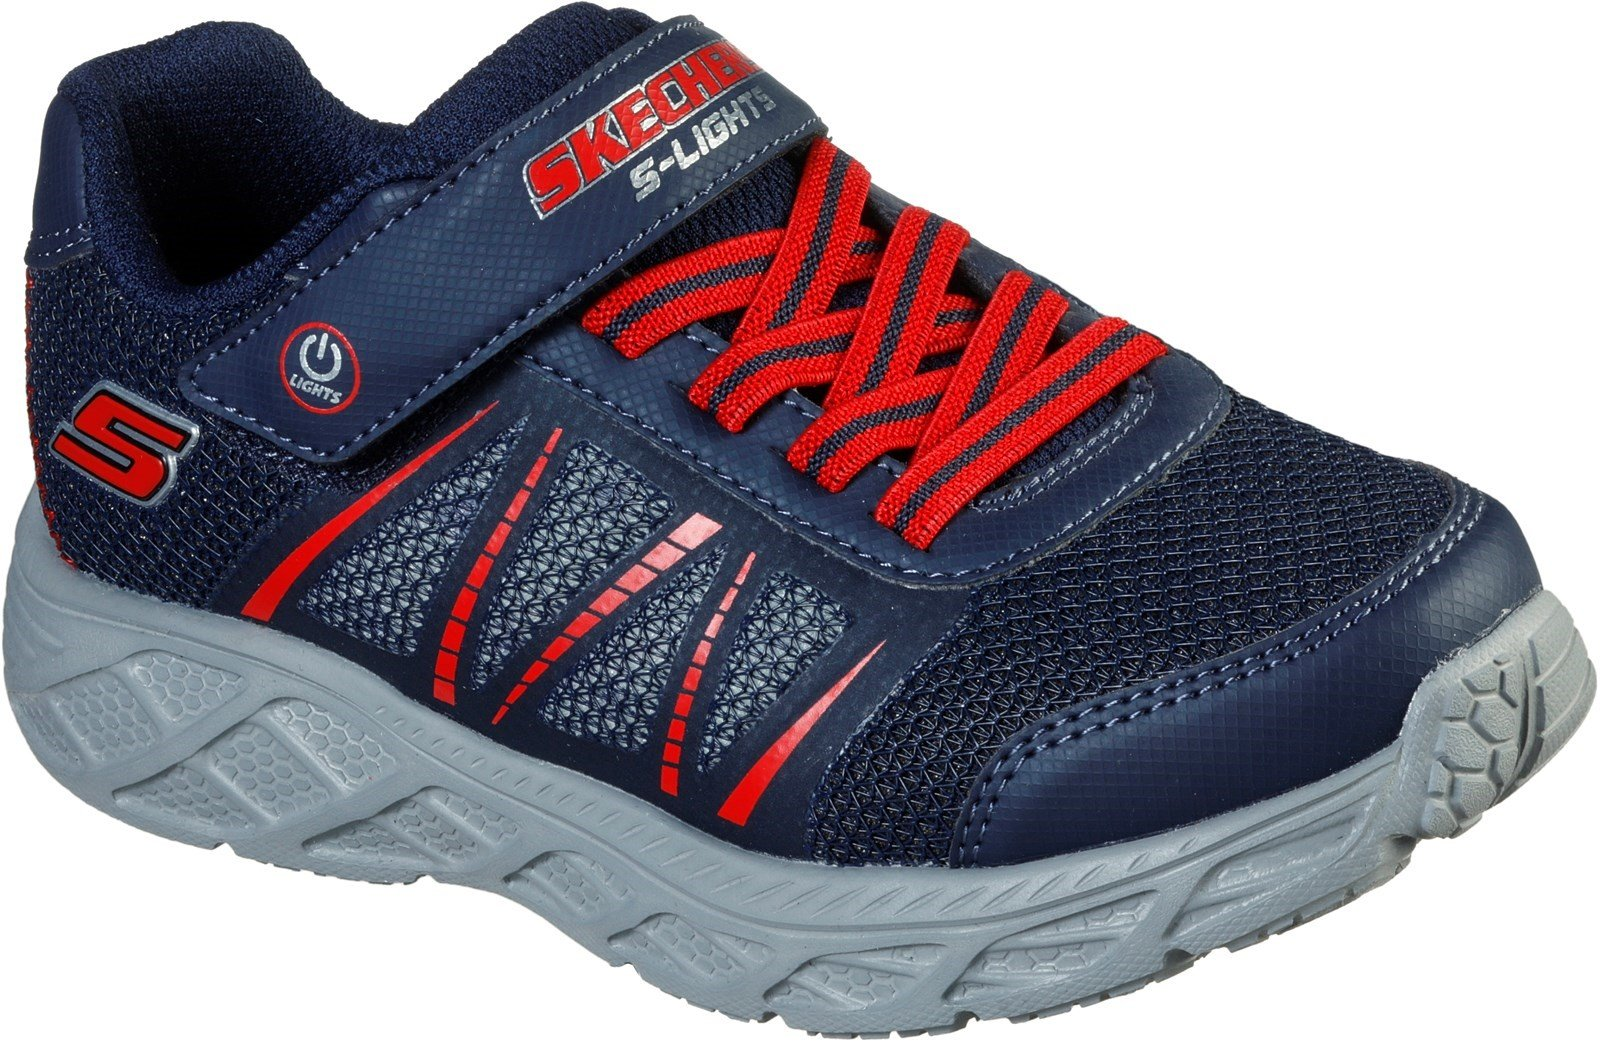 Skechers Kid's Dynamic-Flash Trainer Various Colours 31170 - Navy/Red 9.5